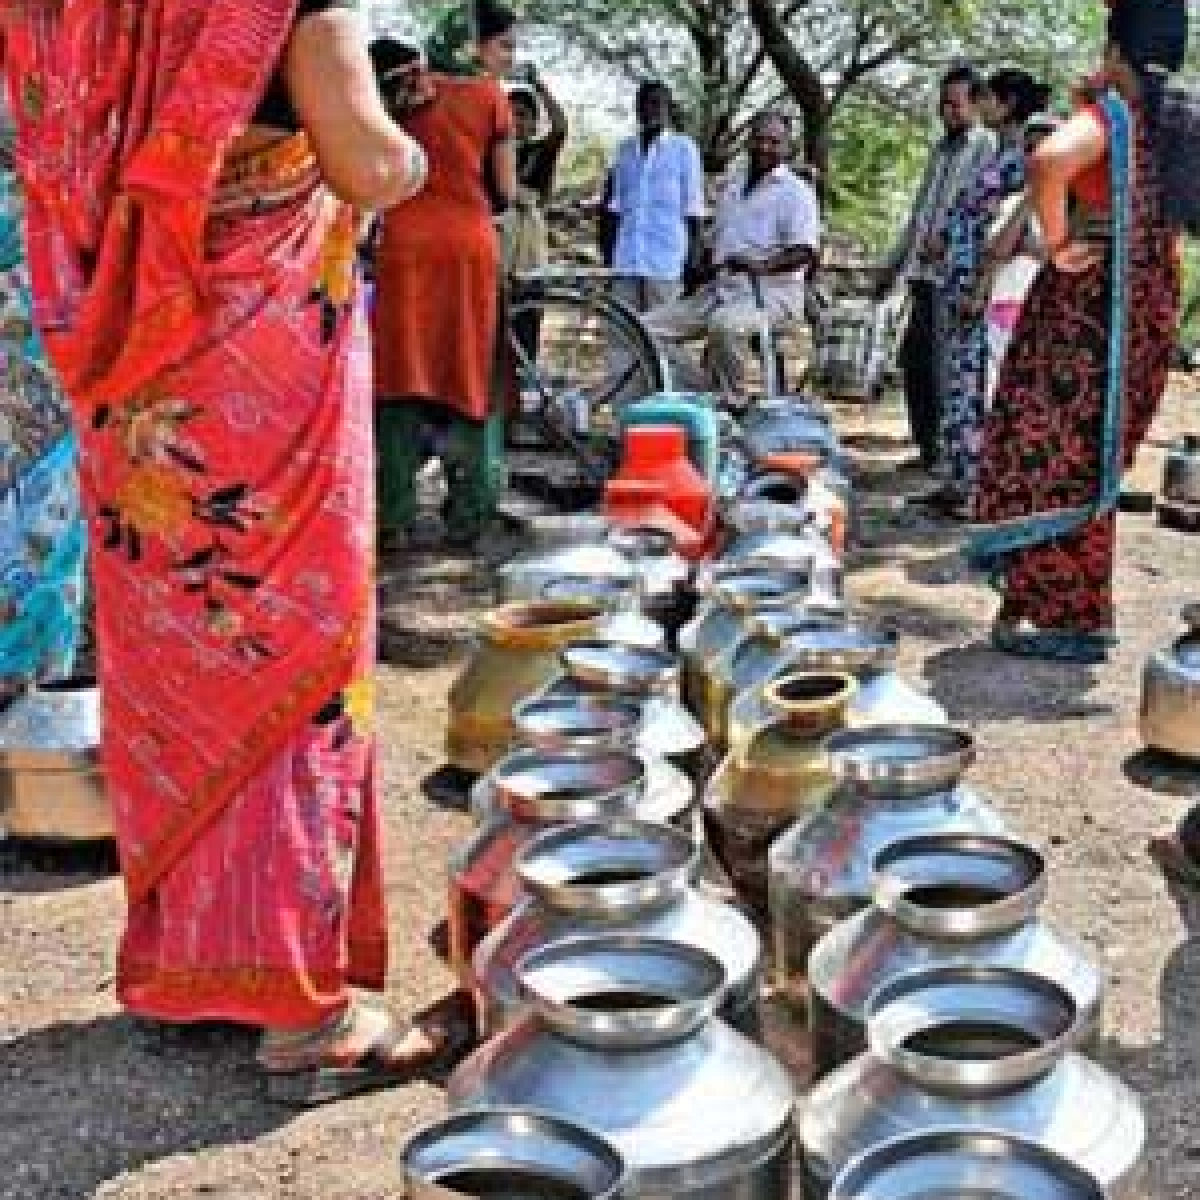 Thane: Residents to face 12 hours water cut again this Friday